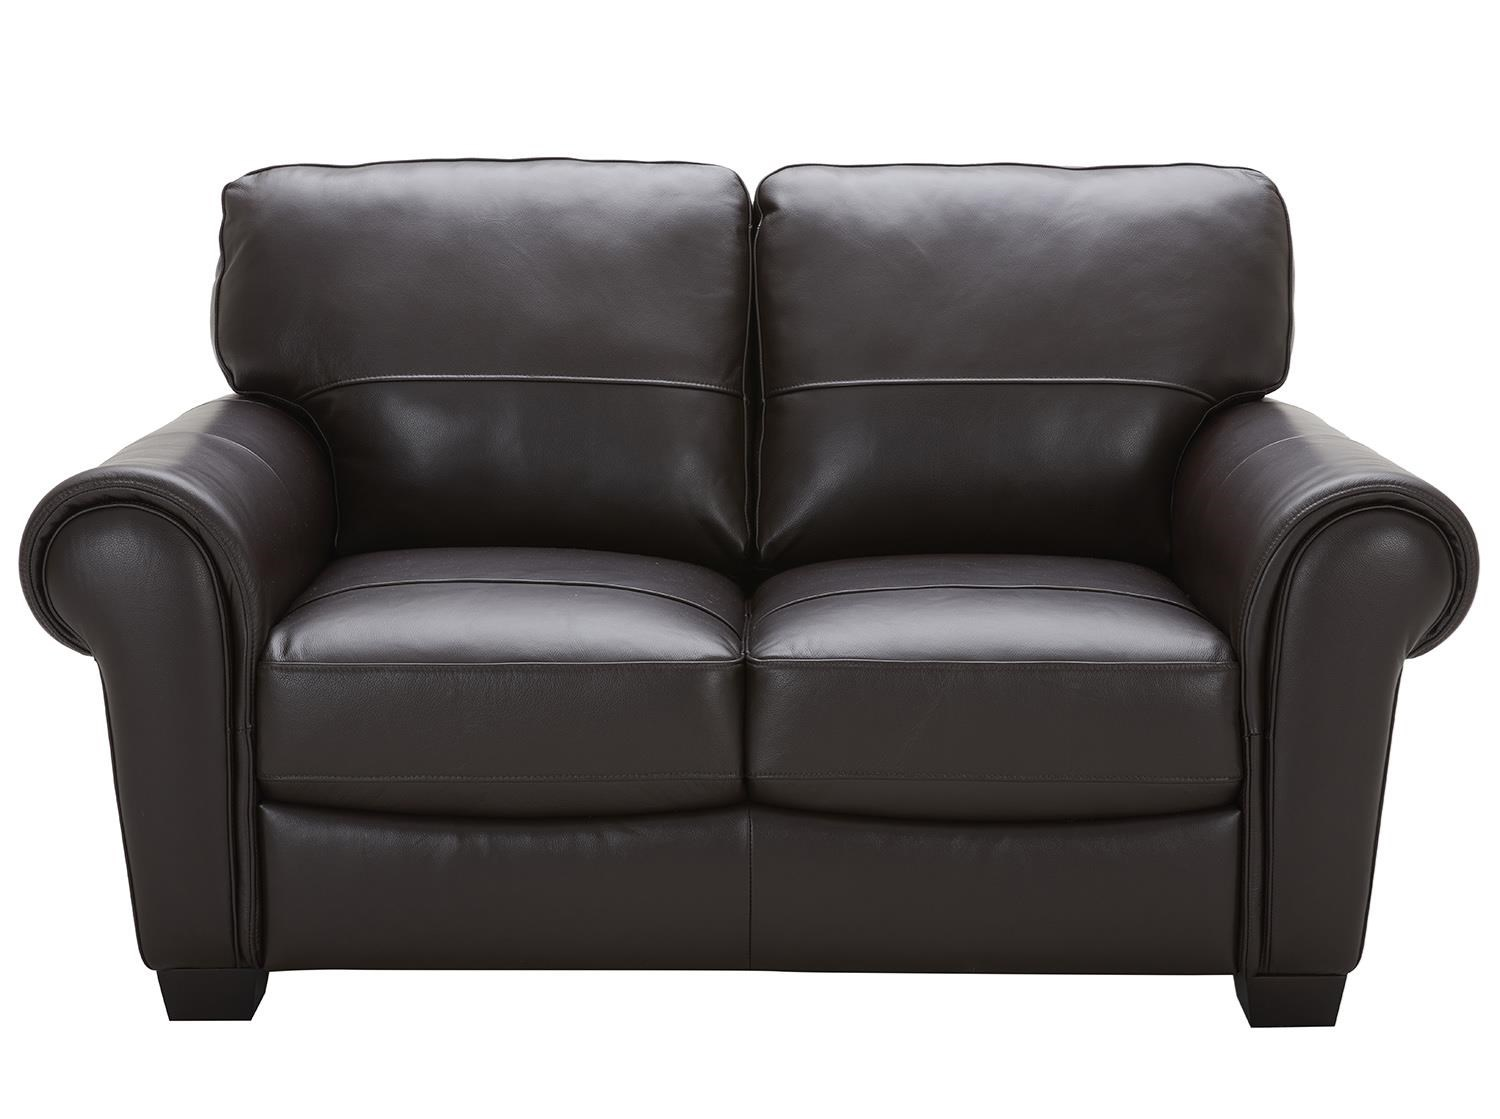 Urban Evolution Teddy Leather Loveseat - Item Number: 5002-2